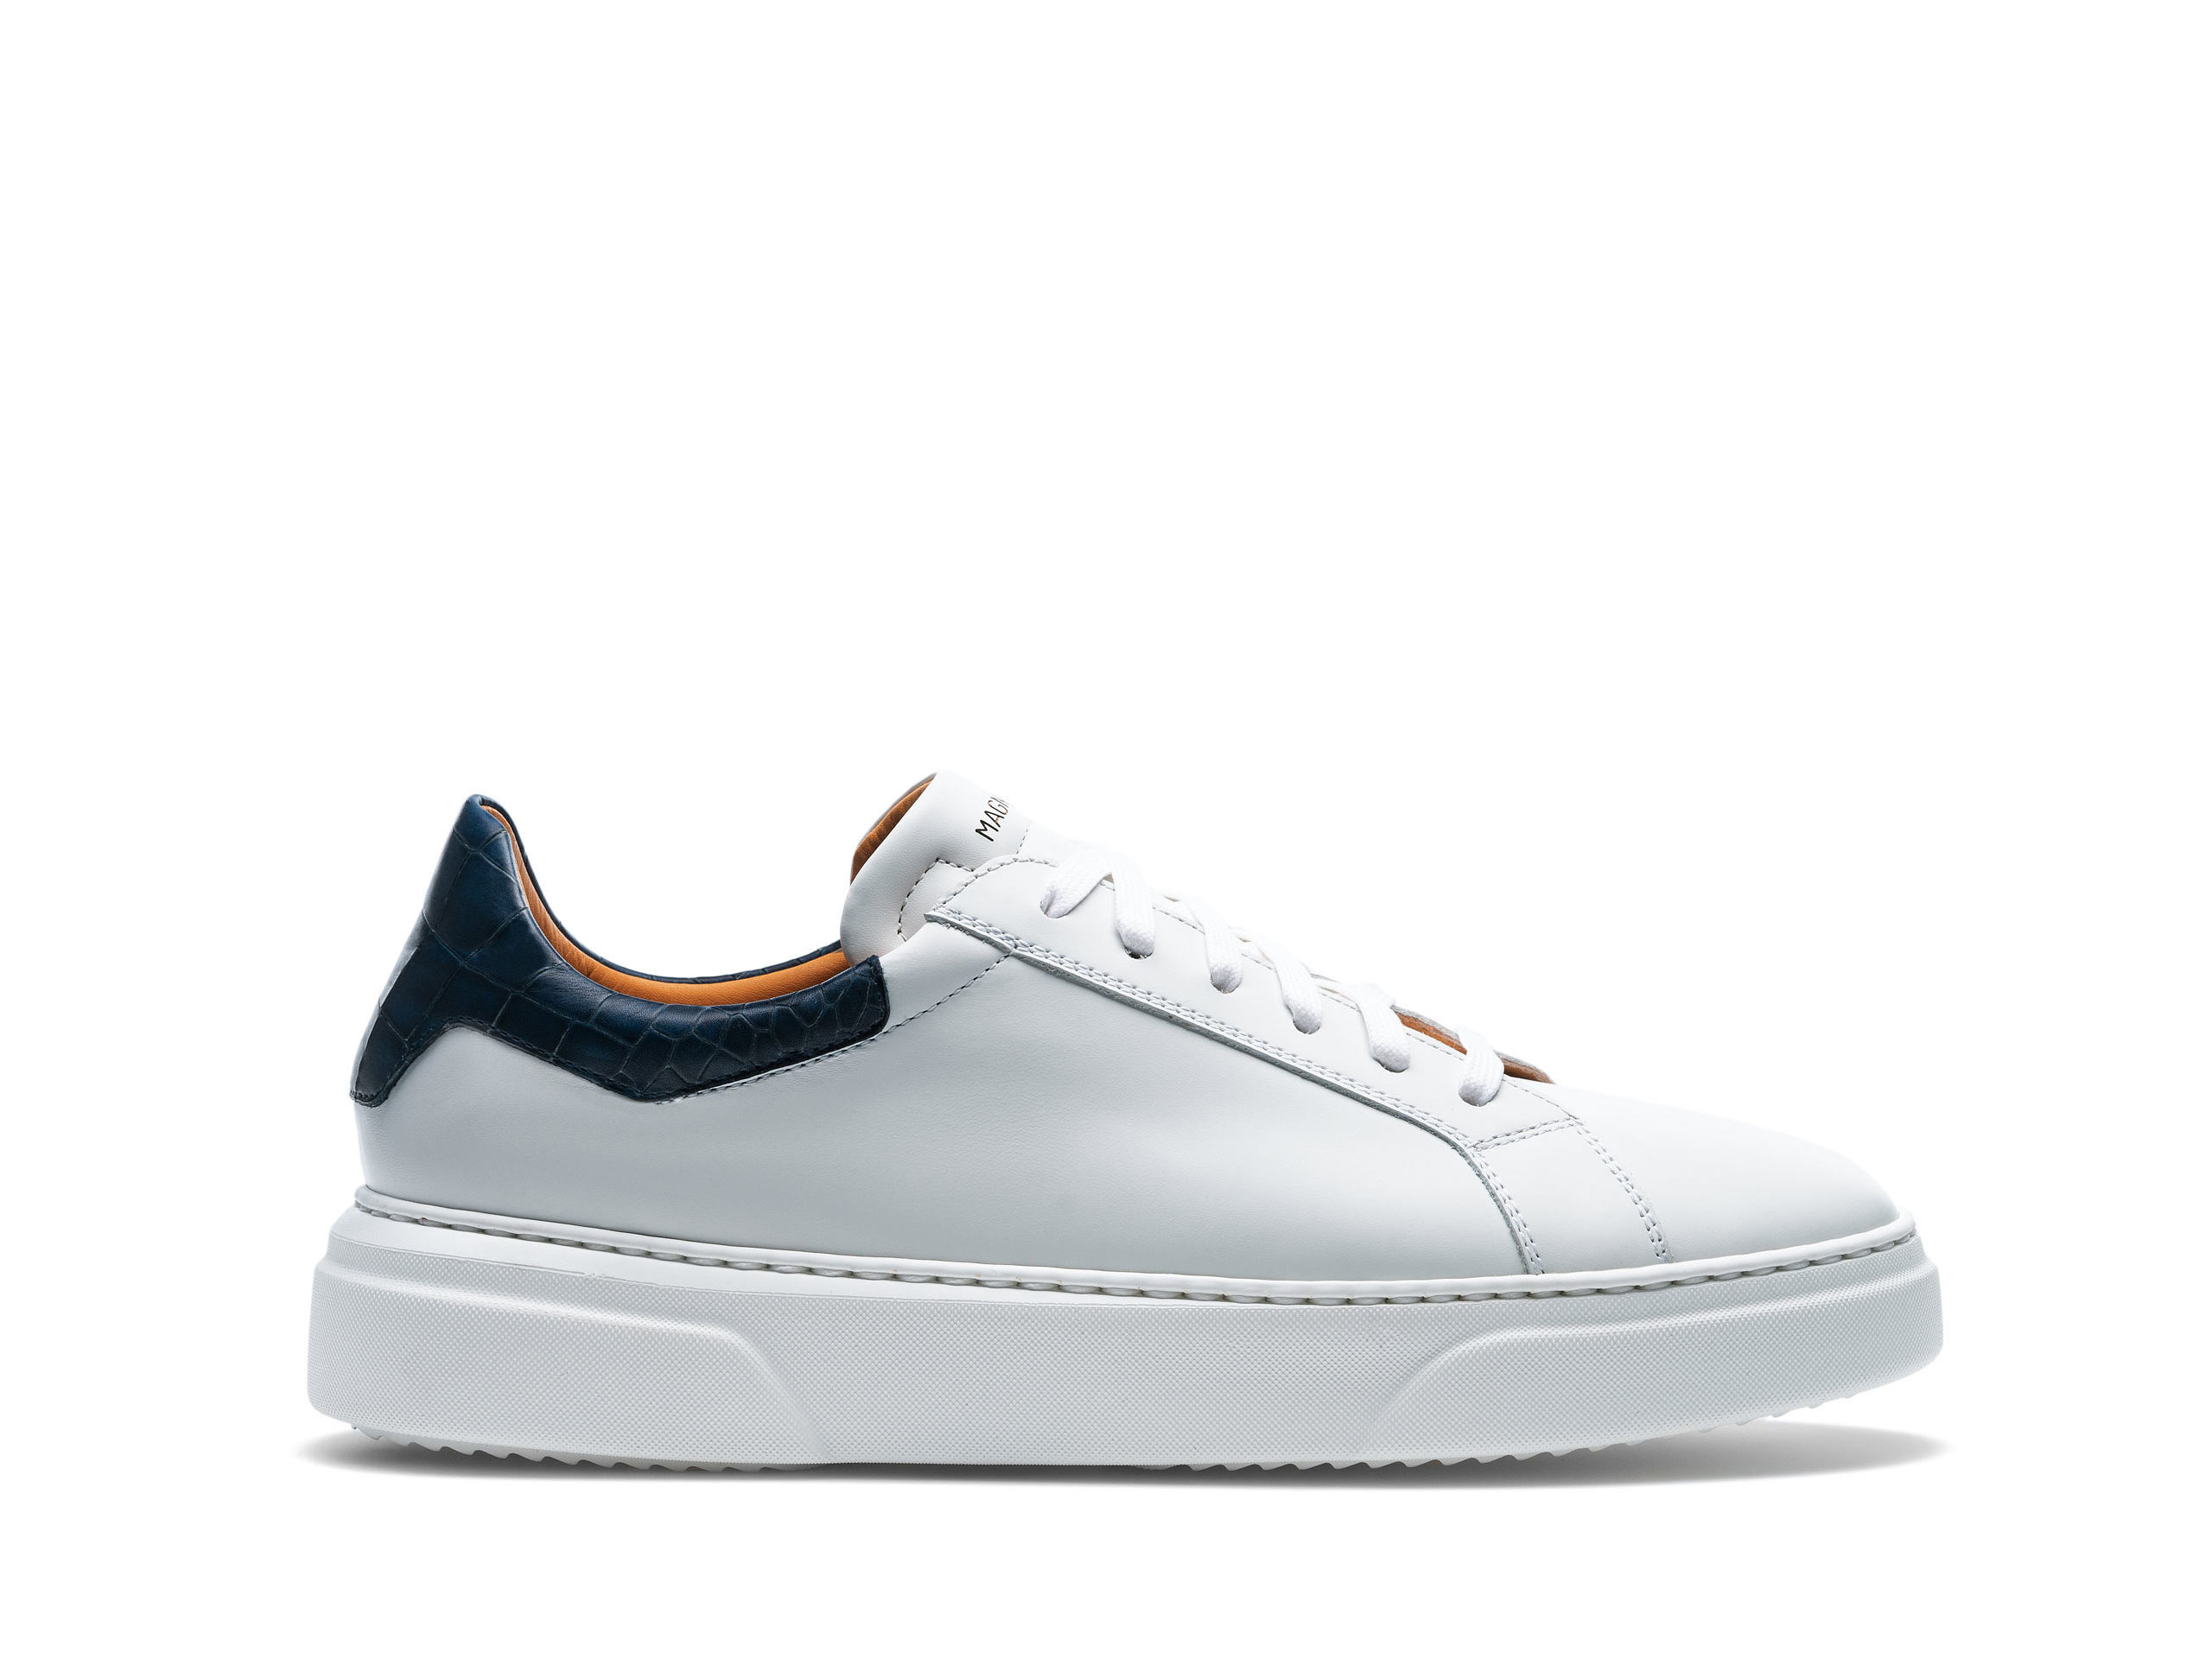 Side Profile of Castillo White and Navy Sneakers